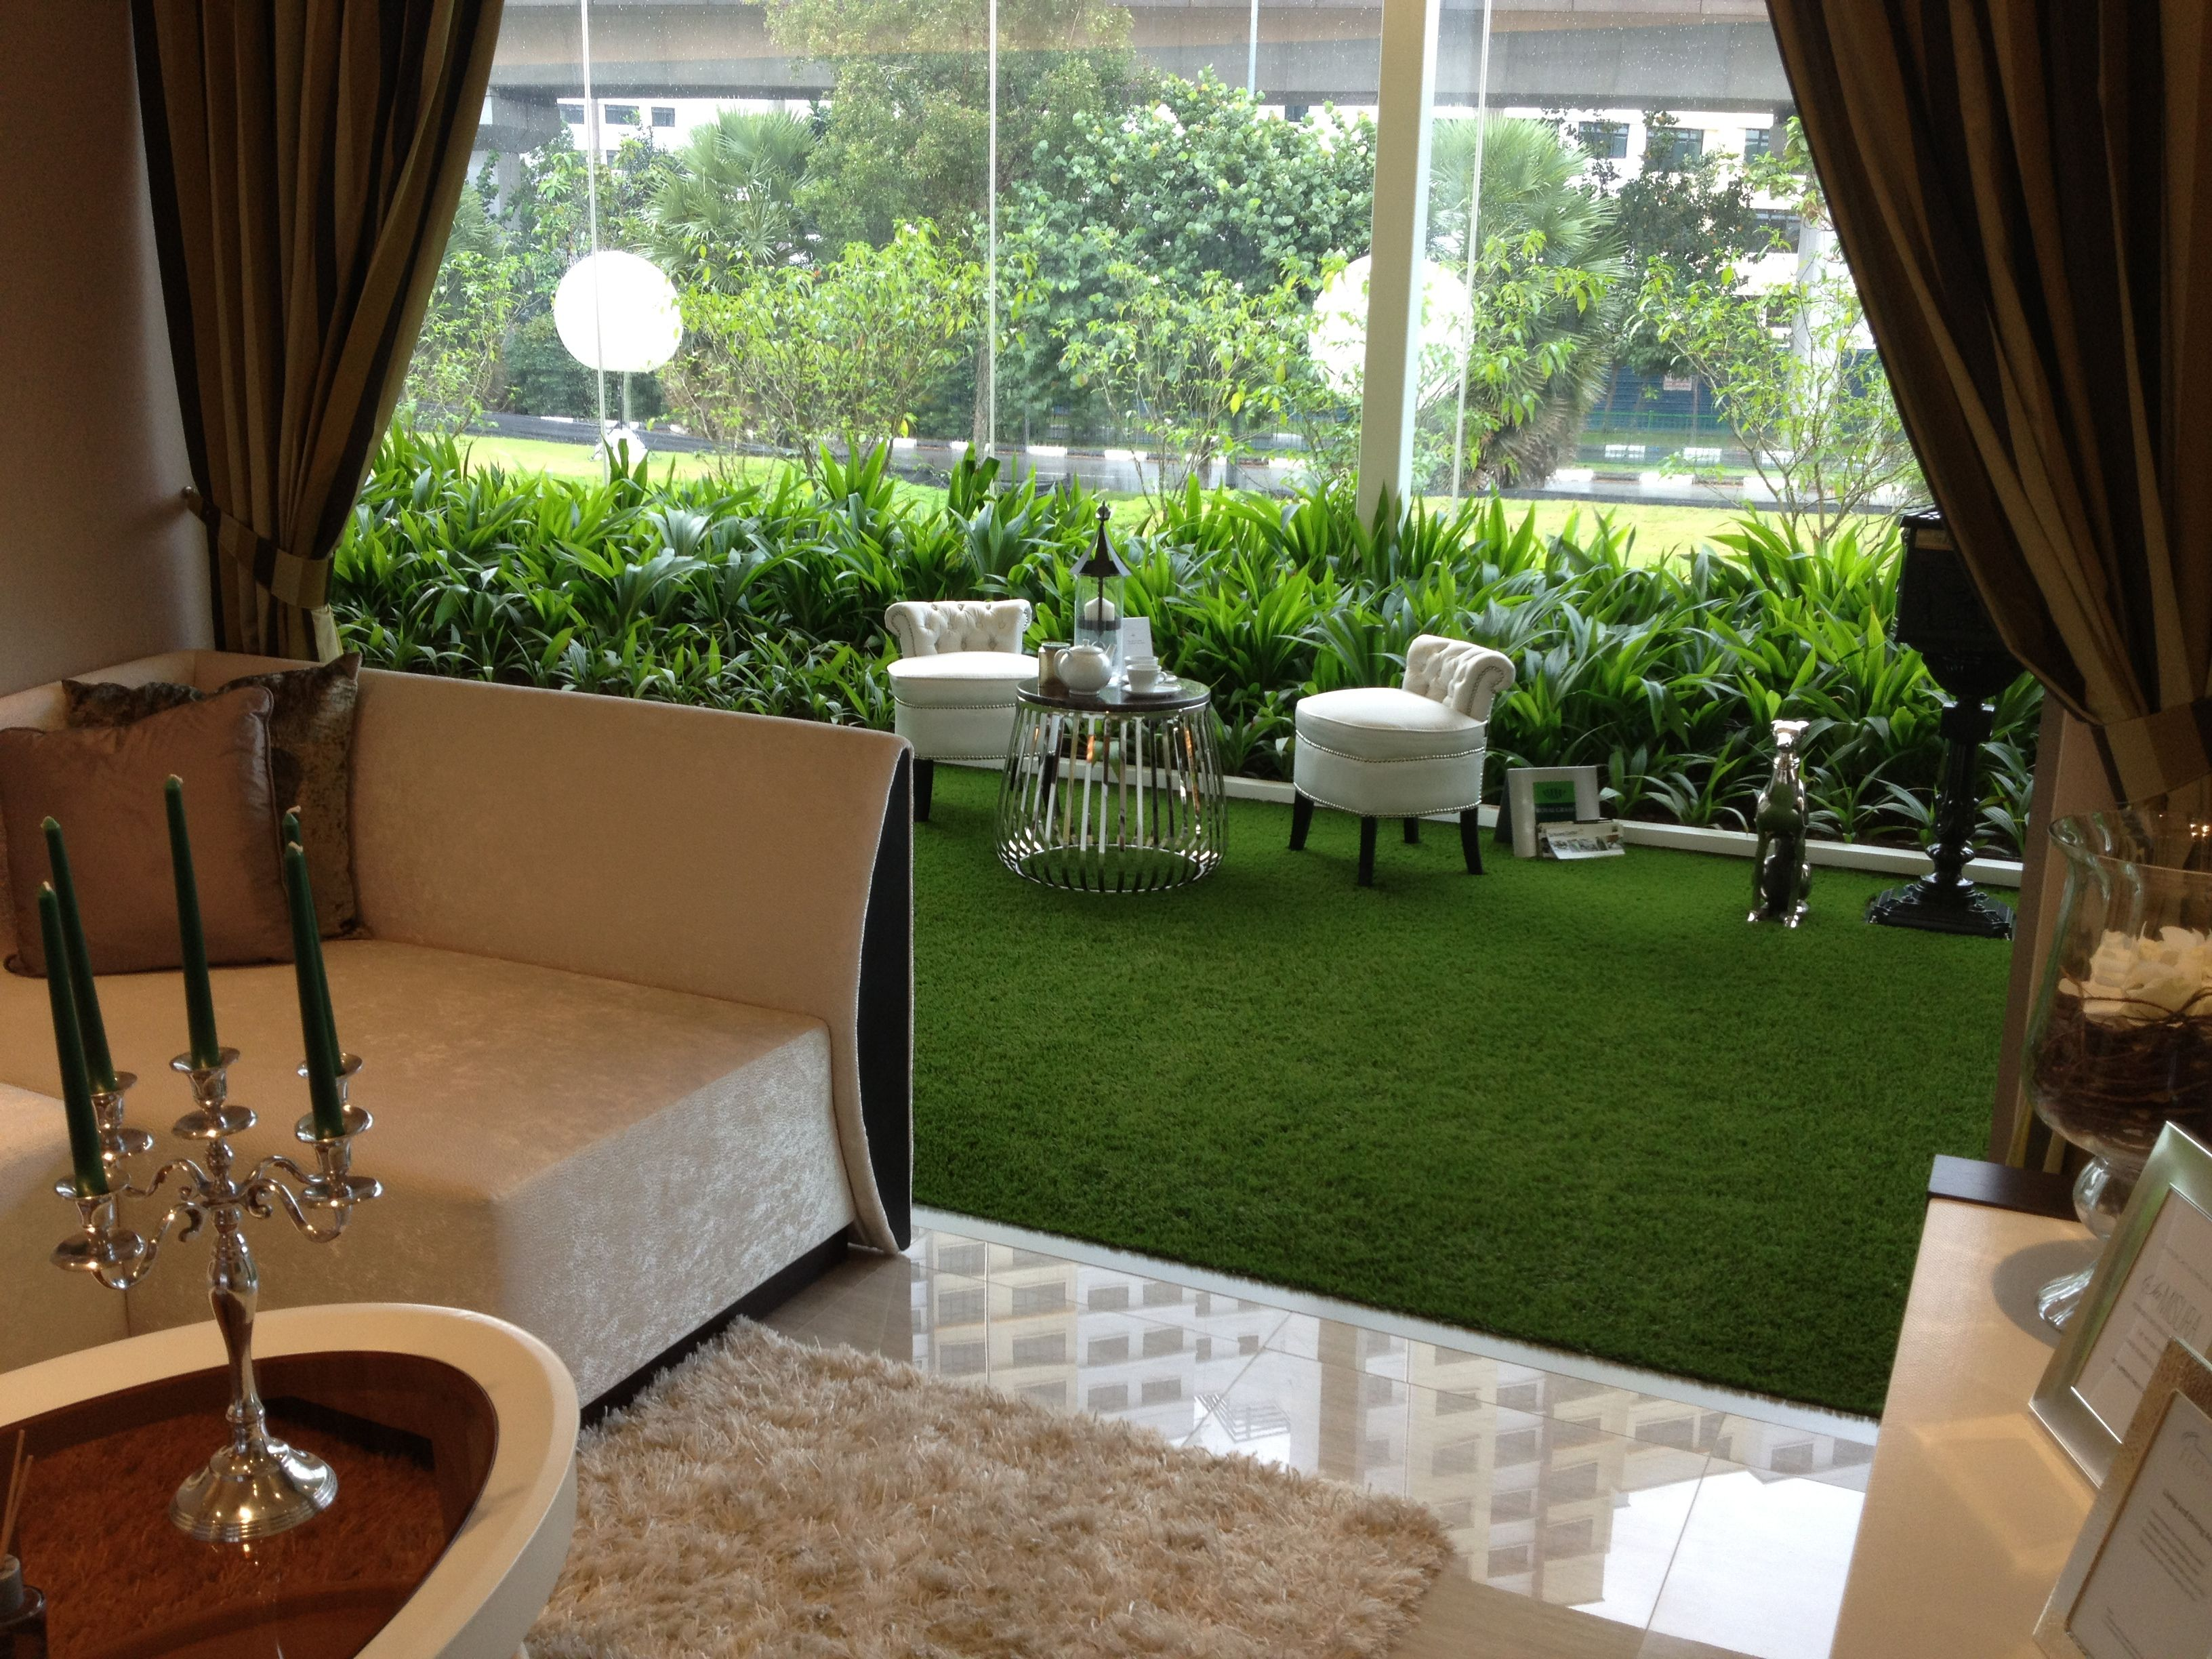 What do you think about this indoor terrace artificialgrass